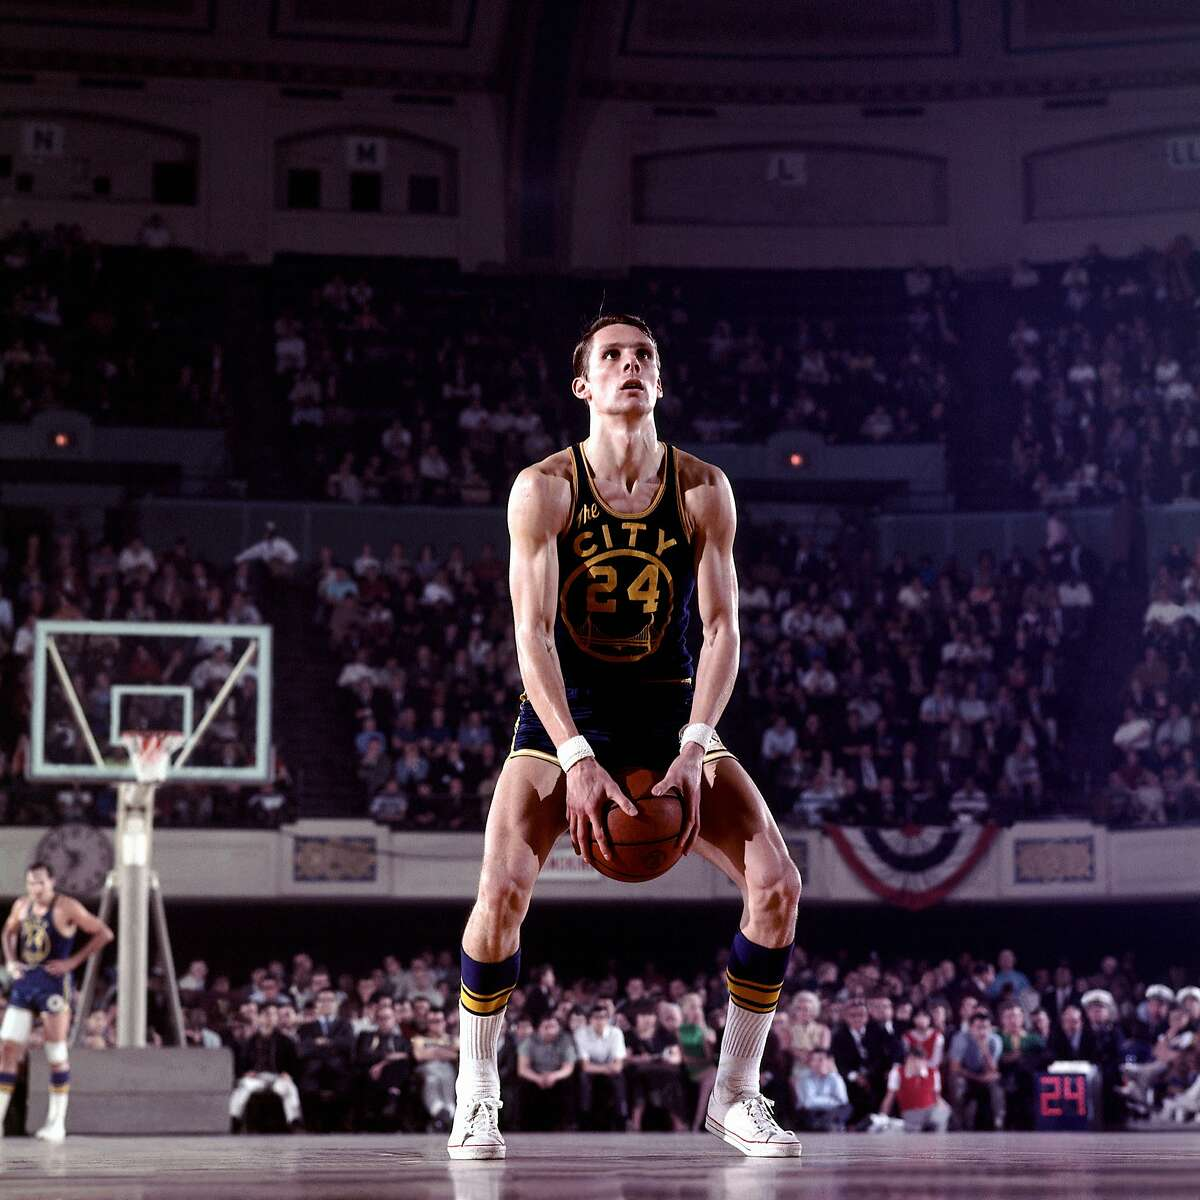 Rick Barry of the Golden State Warriors shoots with his unorthodox free throw style during a game in the 1970s.